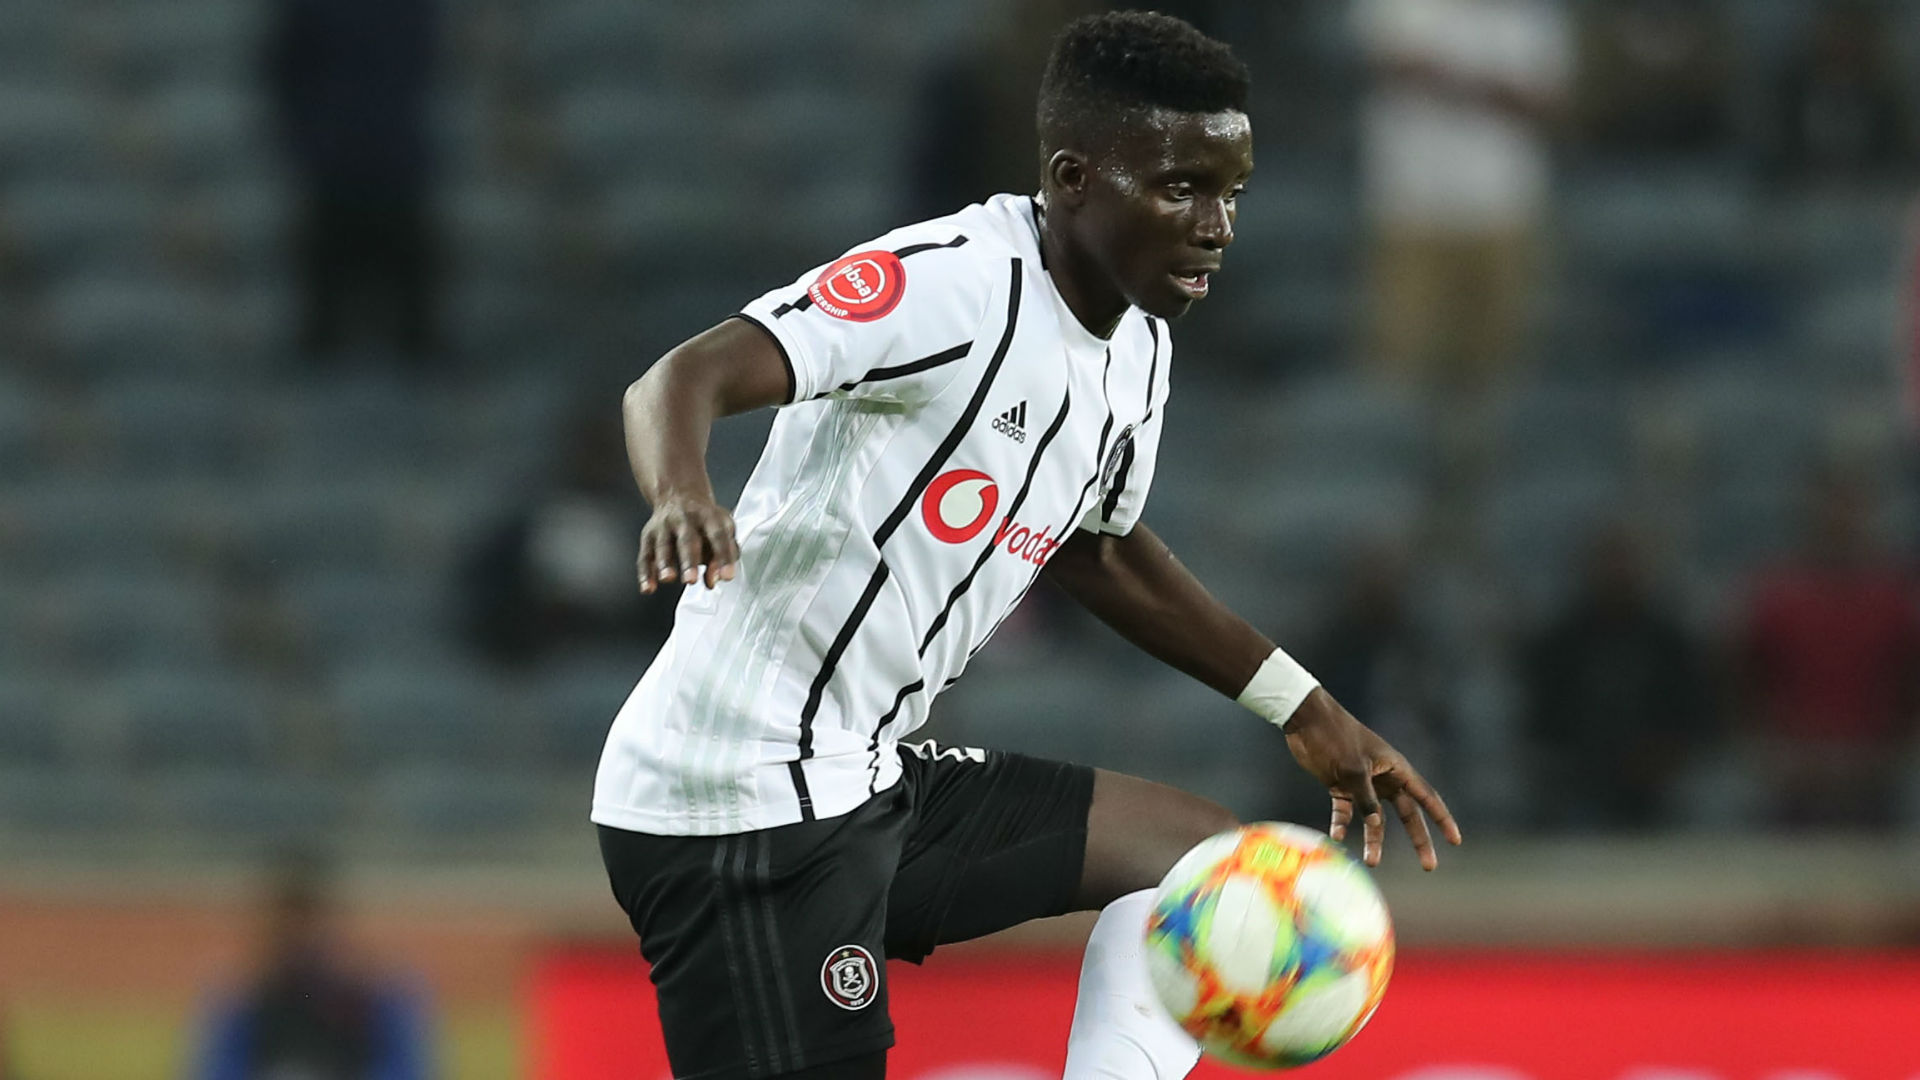 'We won't change, we are not scared' – Swallows' Truter ahead of Orlando Pirates clash